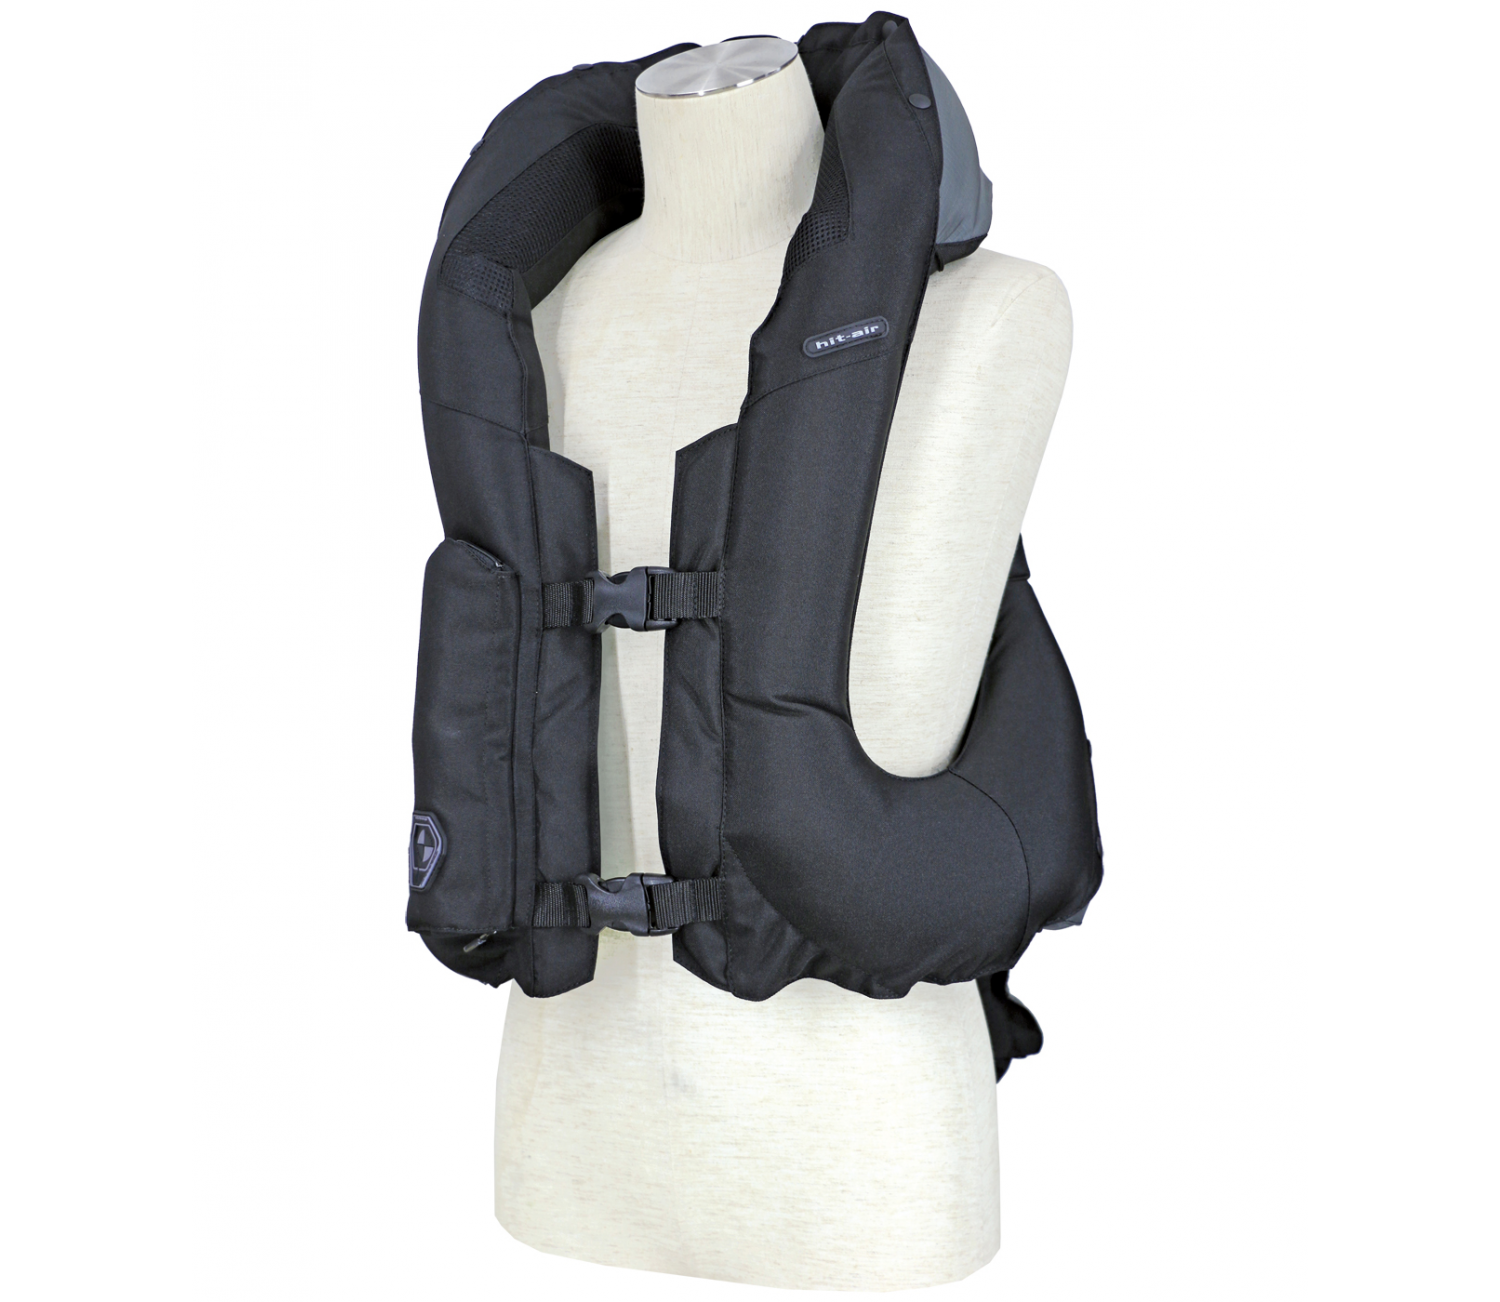 Gilet air-bag Hit-Air Evolution